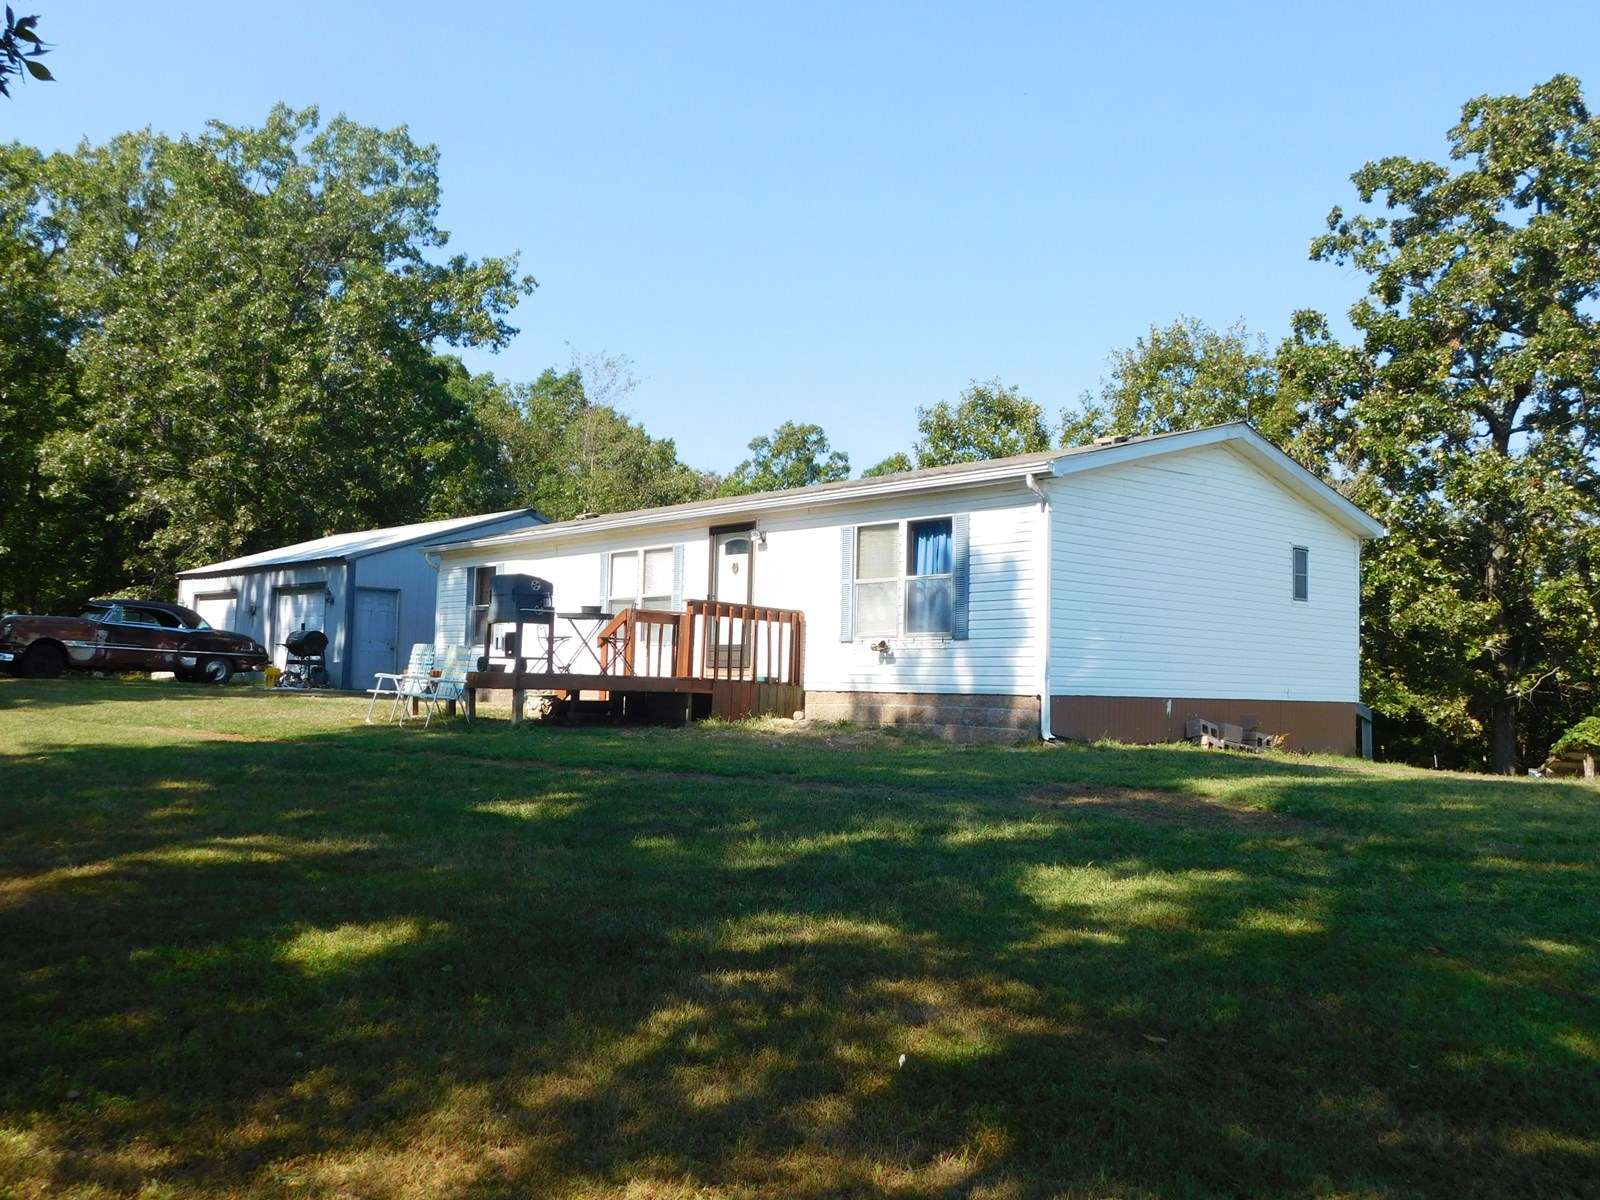 Home for Sale with Acres in South Central Missouri Ozarks